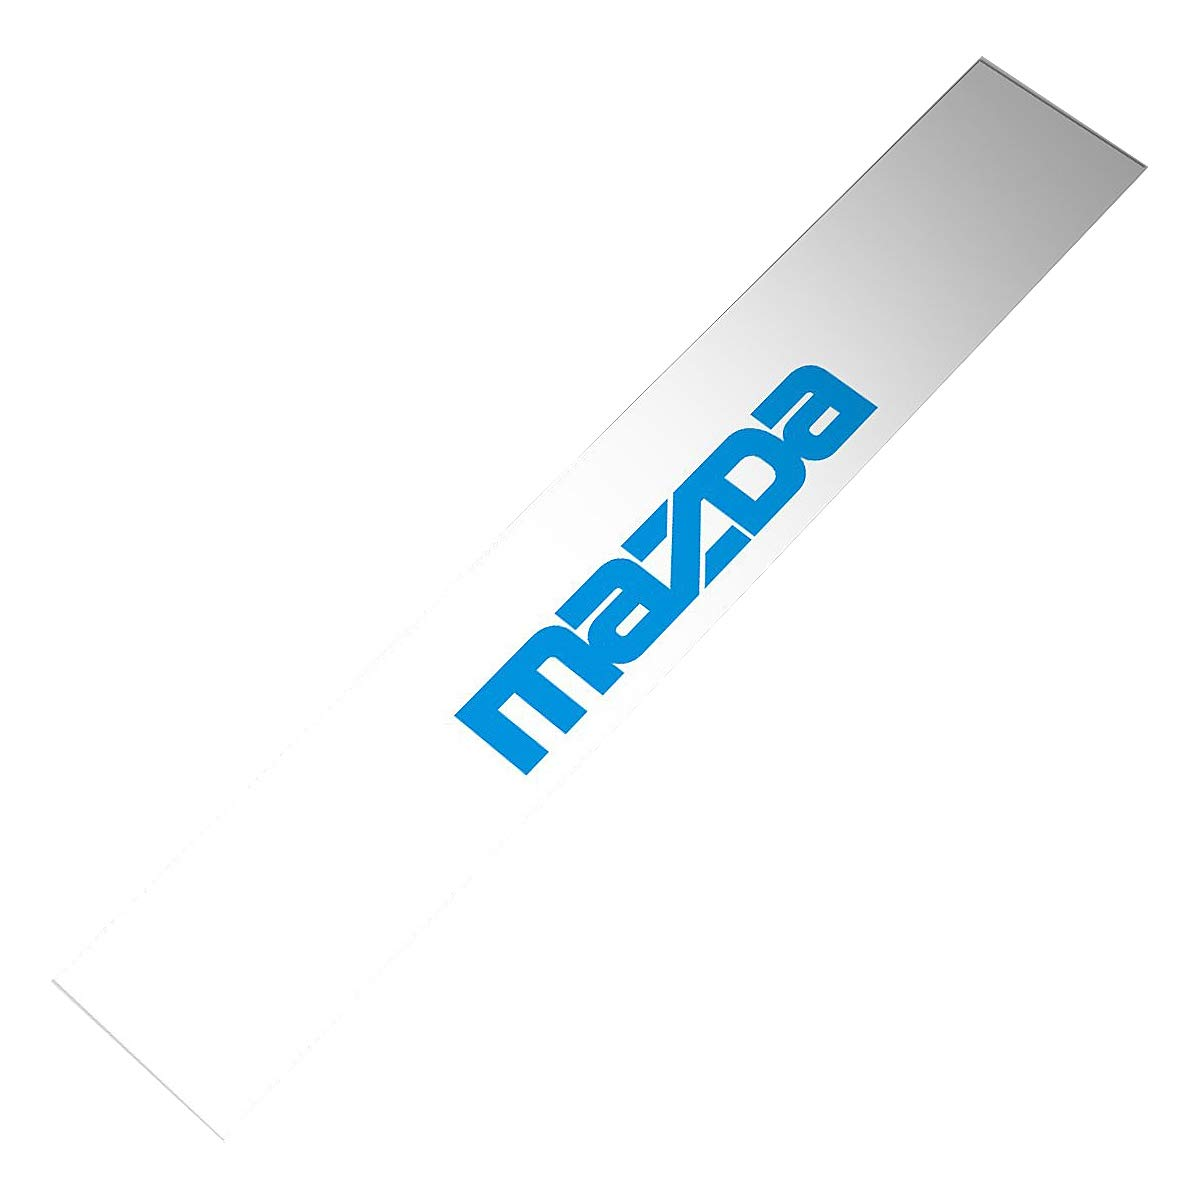 Demupai Mazda Front Windshield Banner Decal Fits Mazda Cars 51.97 X 8.27 Blue Letter + White Background